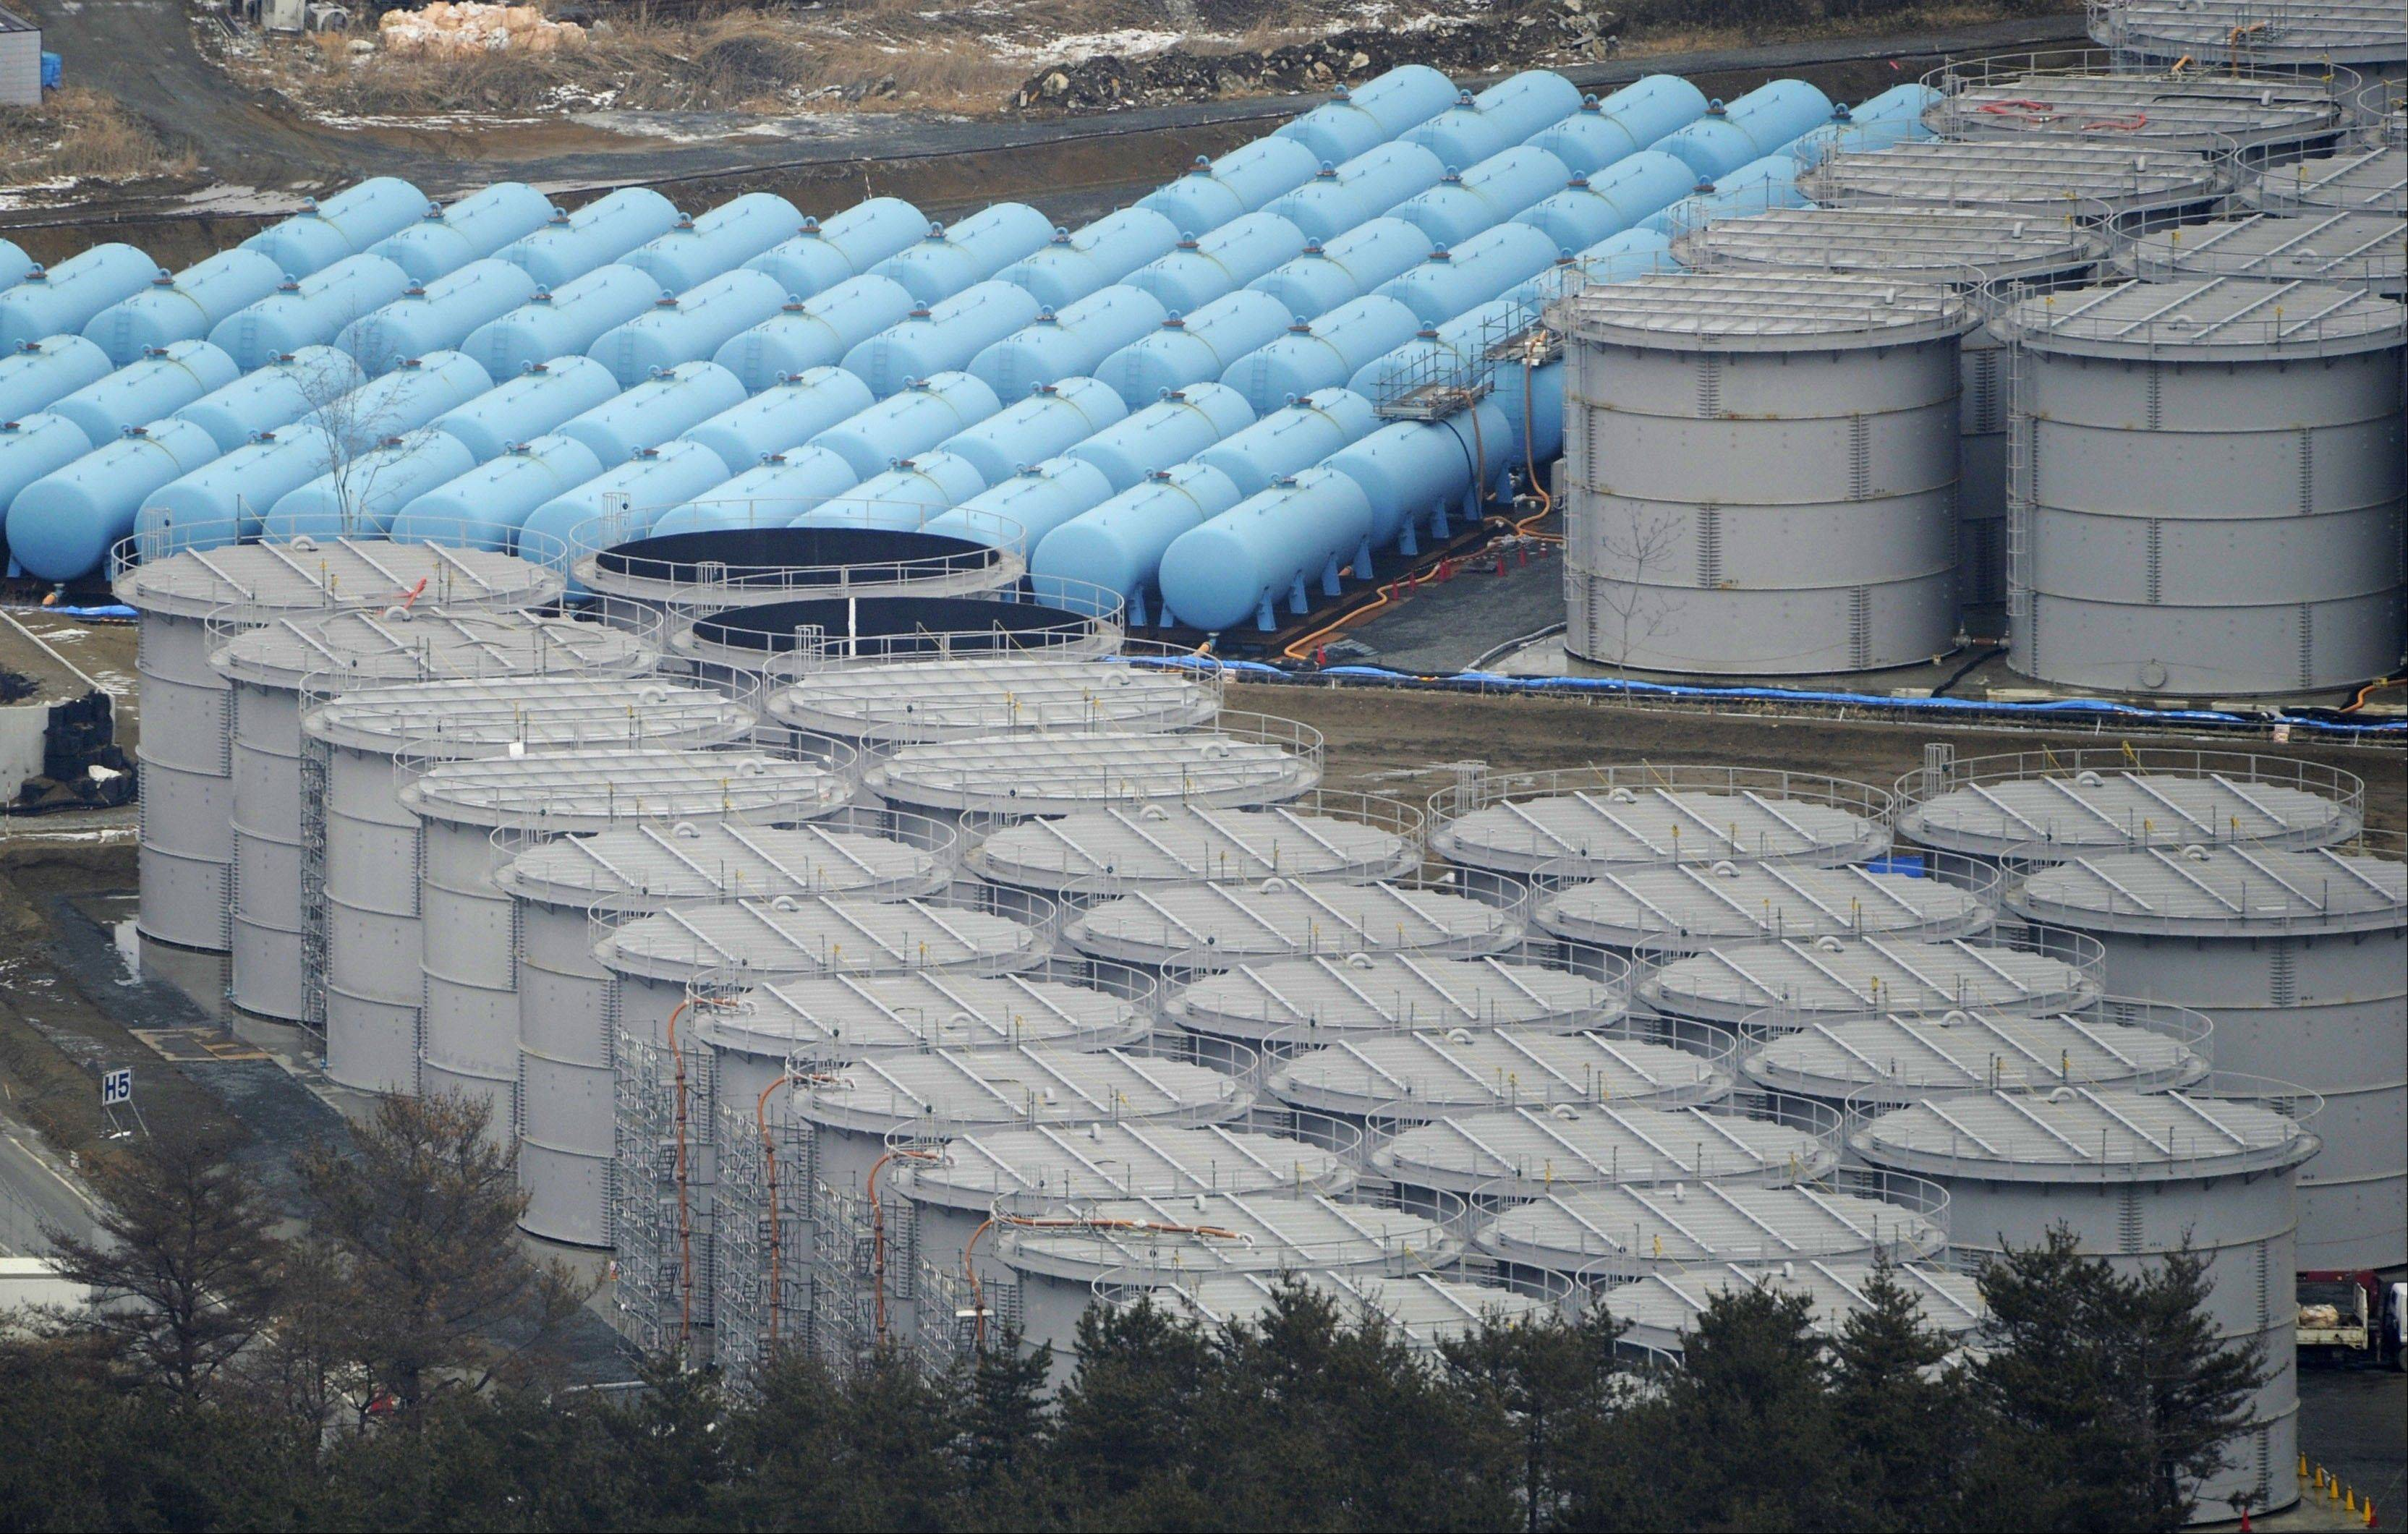 In this March 2012 file photo, storage tanks for radiation-contaminated water are seen in the compound of the tsunami-crippled Fukushima Dai-ichi nuclear power plant in northeastern Japan. Japan�s crippled nuclear power plant is struggling to find space to store tens of thousands of tons of highly contaminated water used to cool the broken reactors.